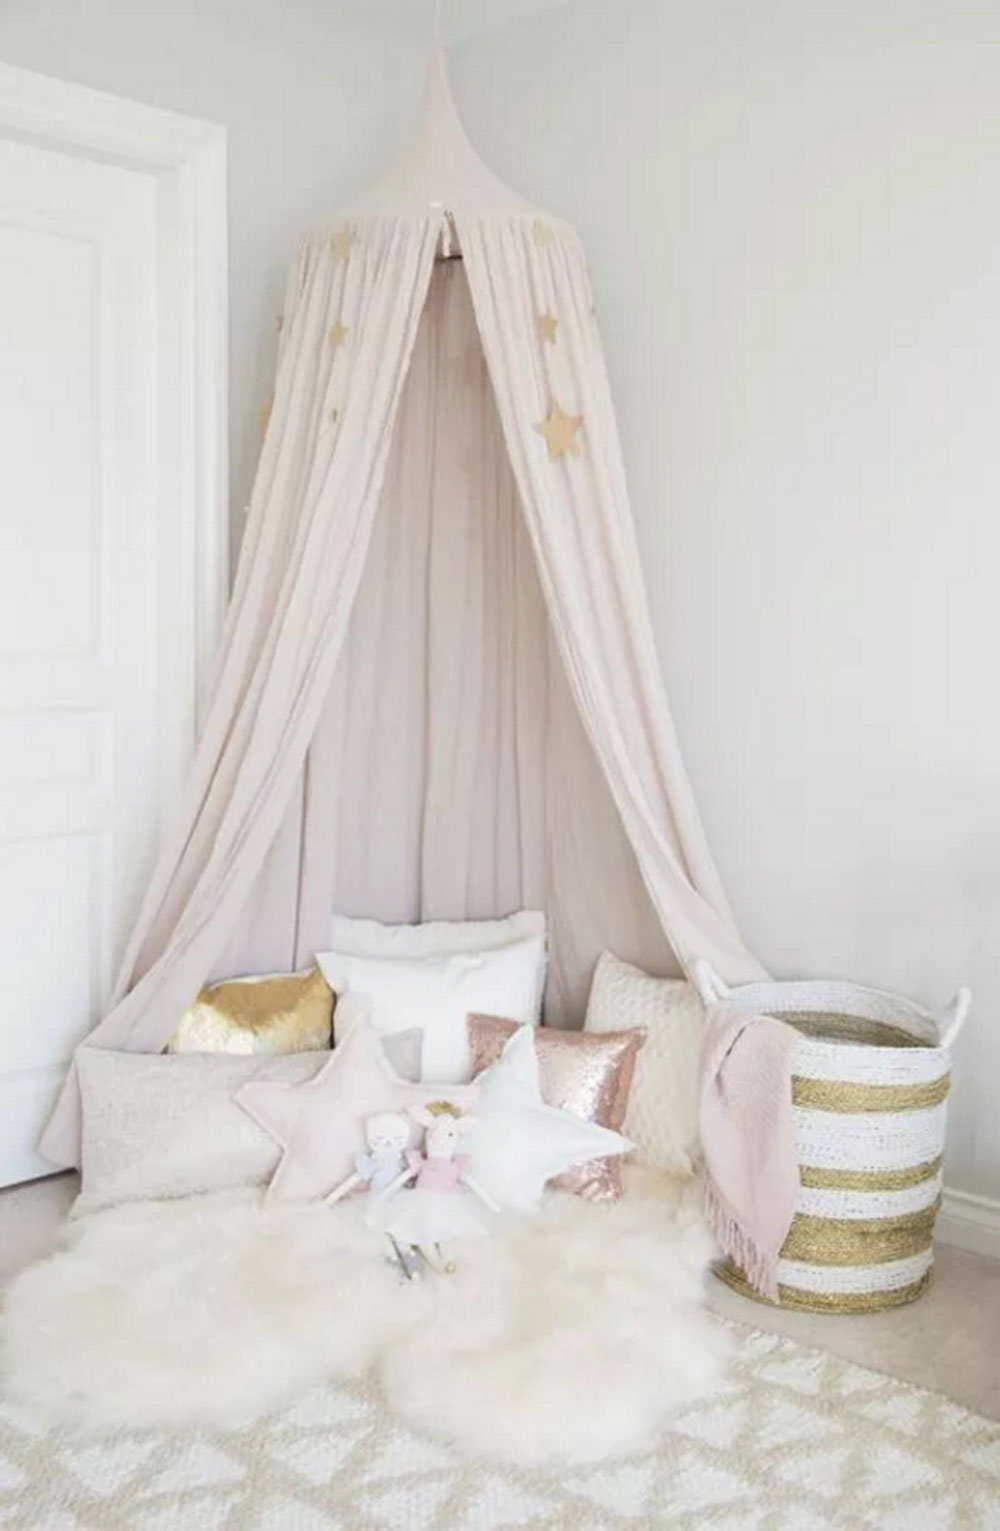 Comfortable Reading Cute room ideas your daughter will love